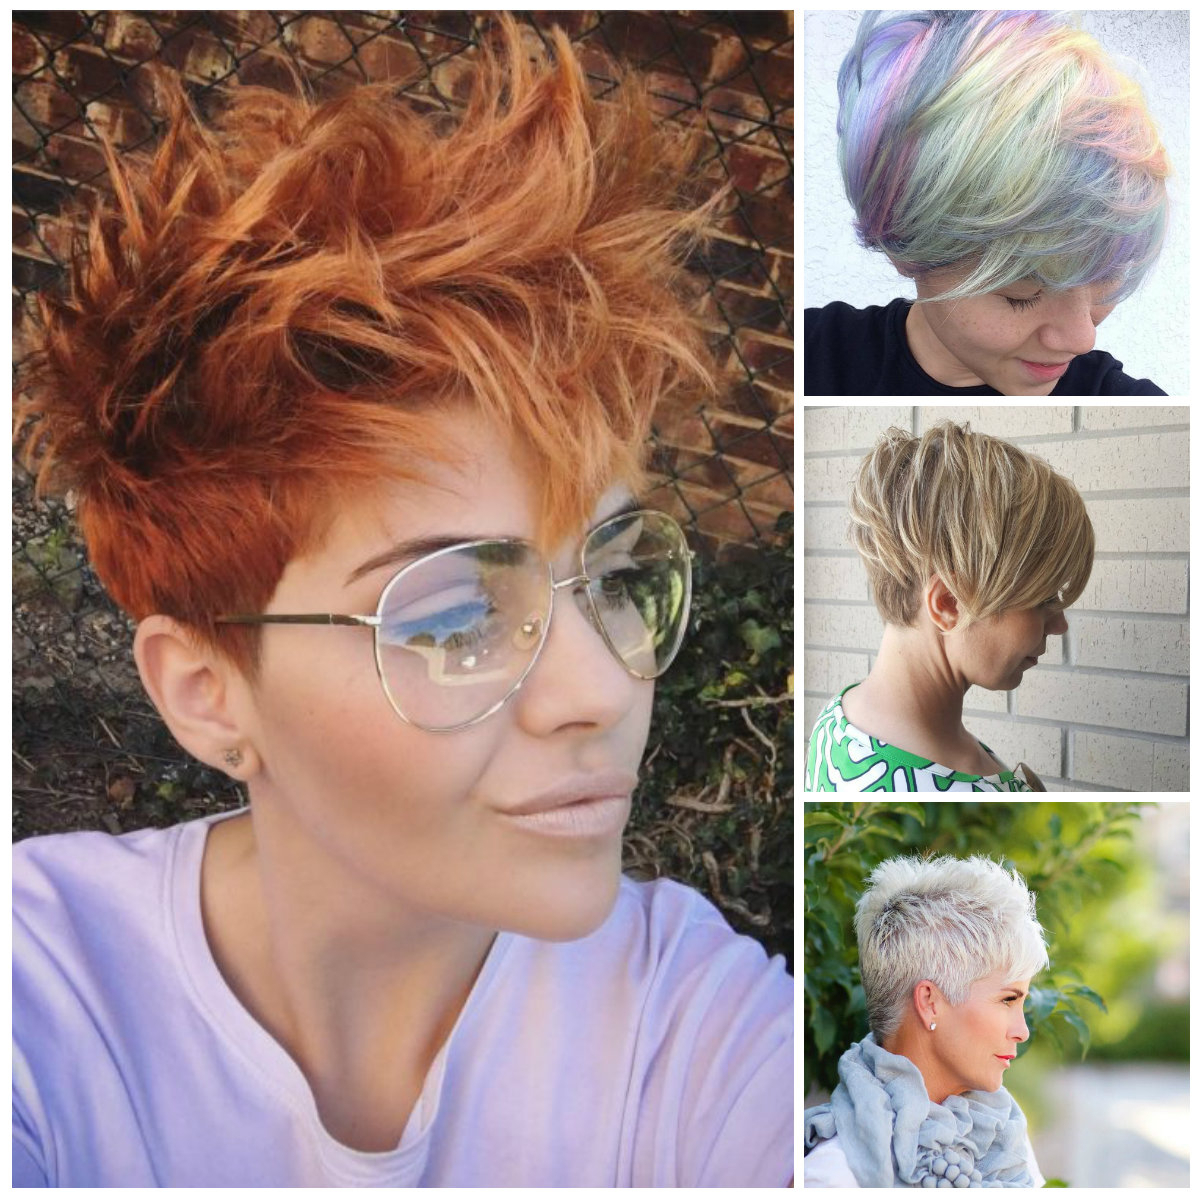 Trendy Pixie Haircuts For 2017 | 2019 Haircuts, Hairstyles For Bold Pixie Haircuts (View 20 of 20)